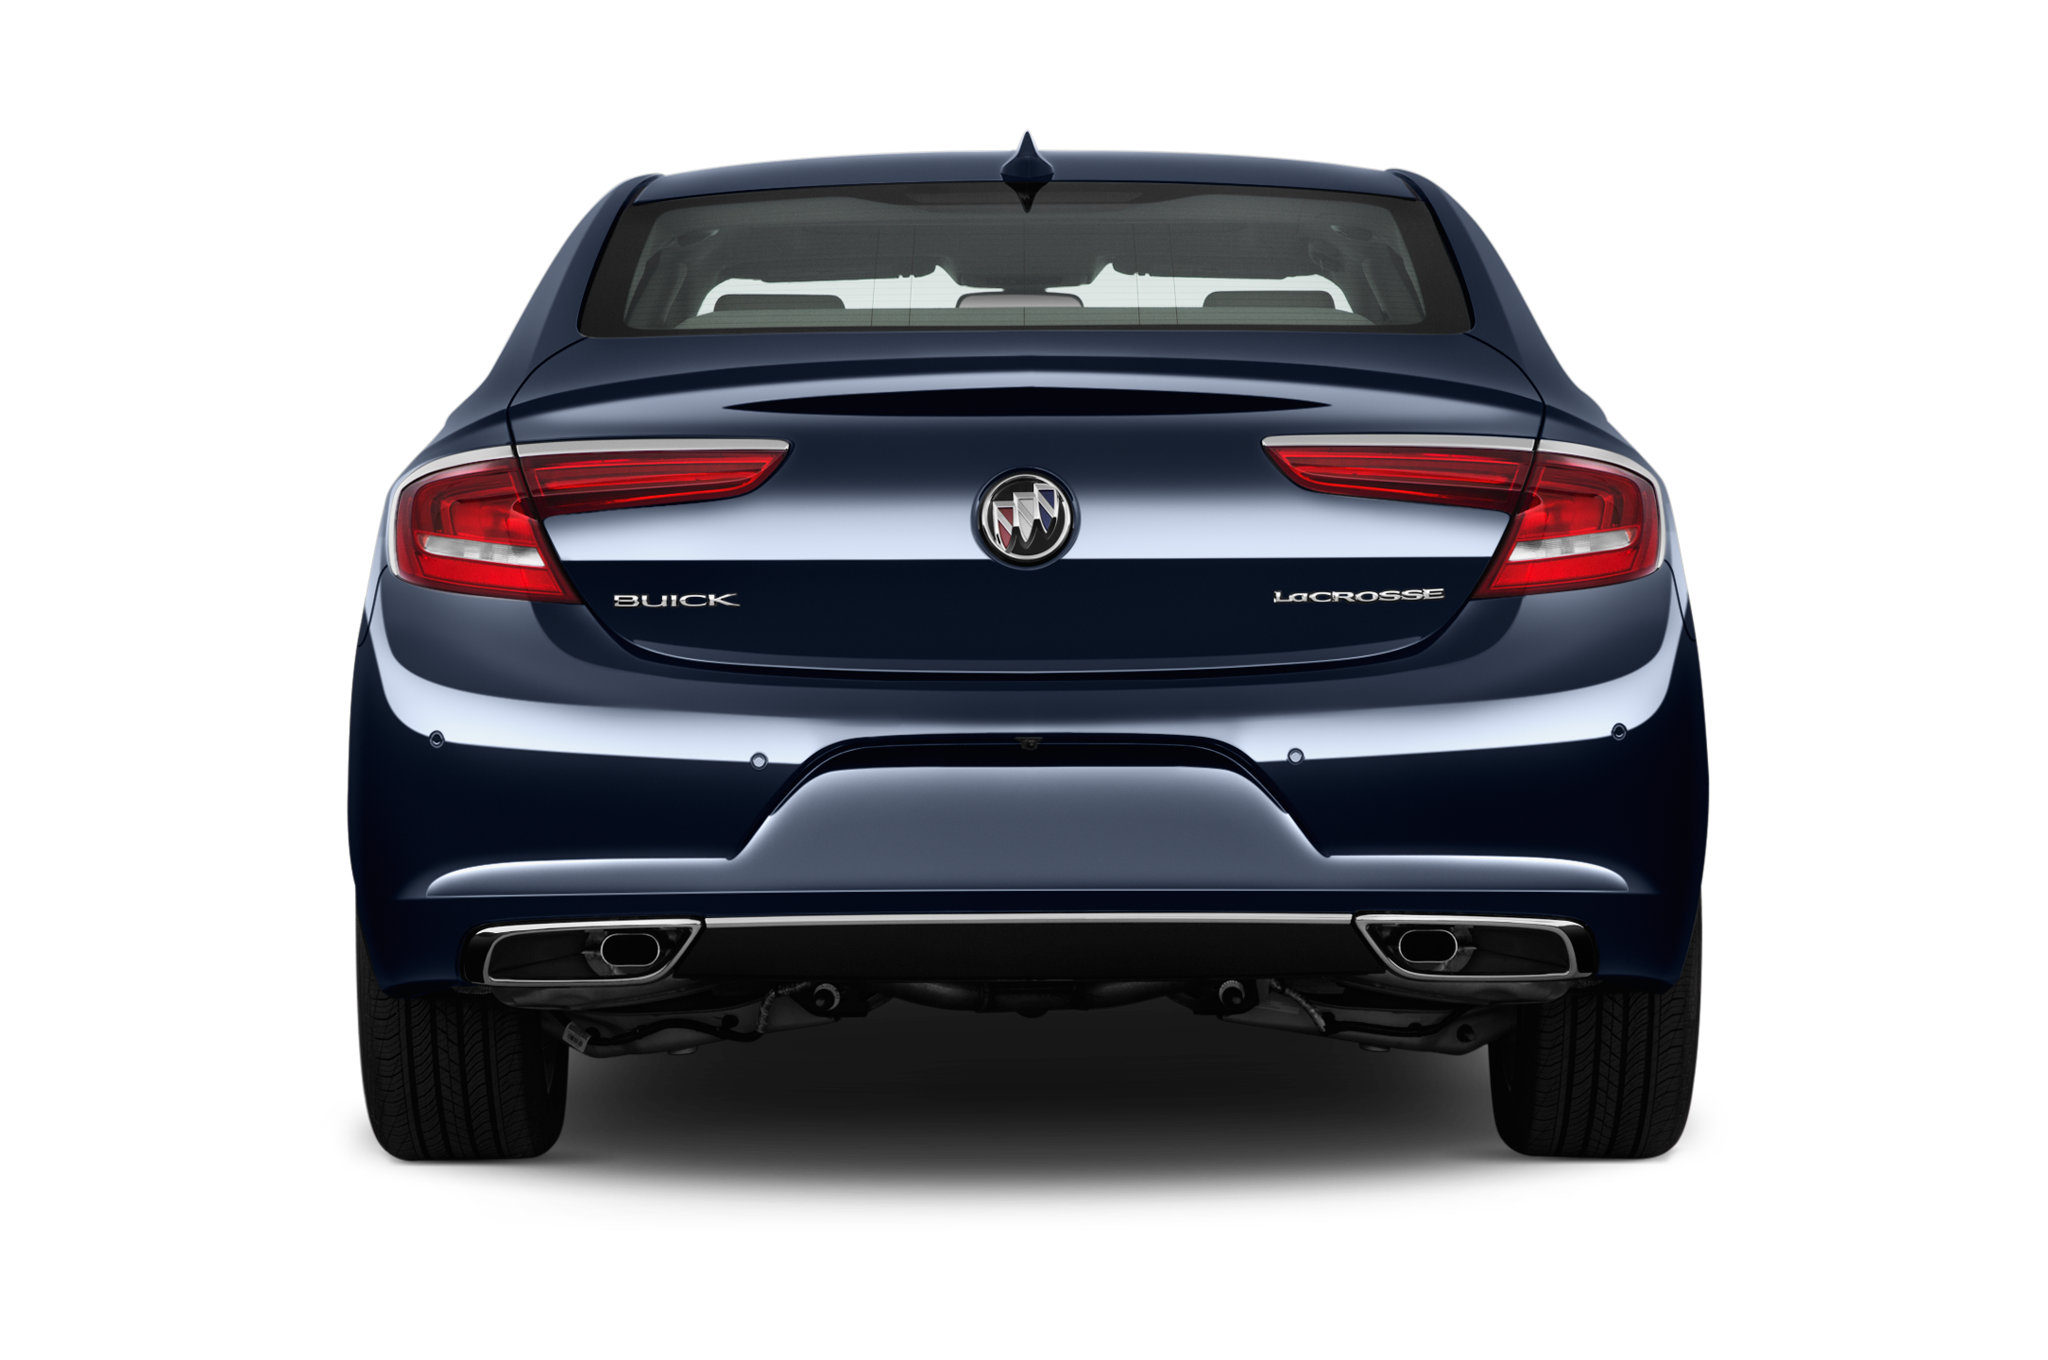 2017 buick lacrosse priced from 32 990 automobile magazine. Black Bedroom Furniture Sets. Home Design Ideas